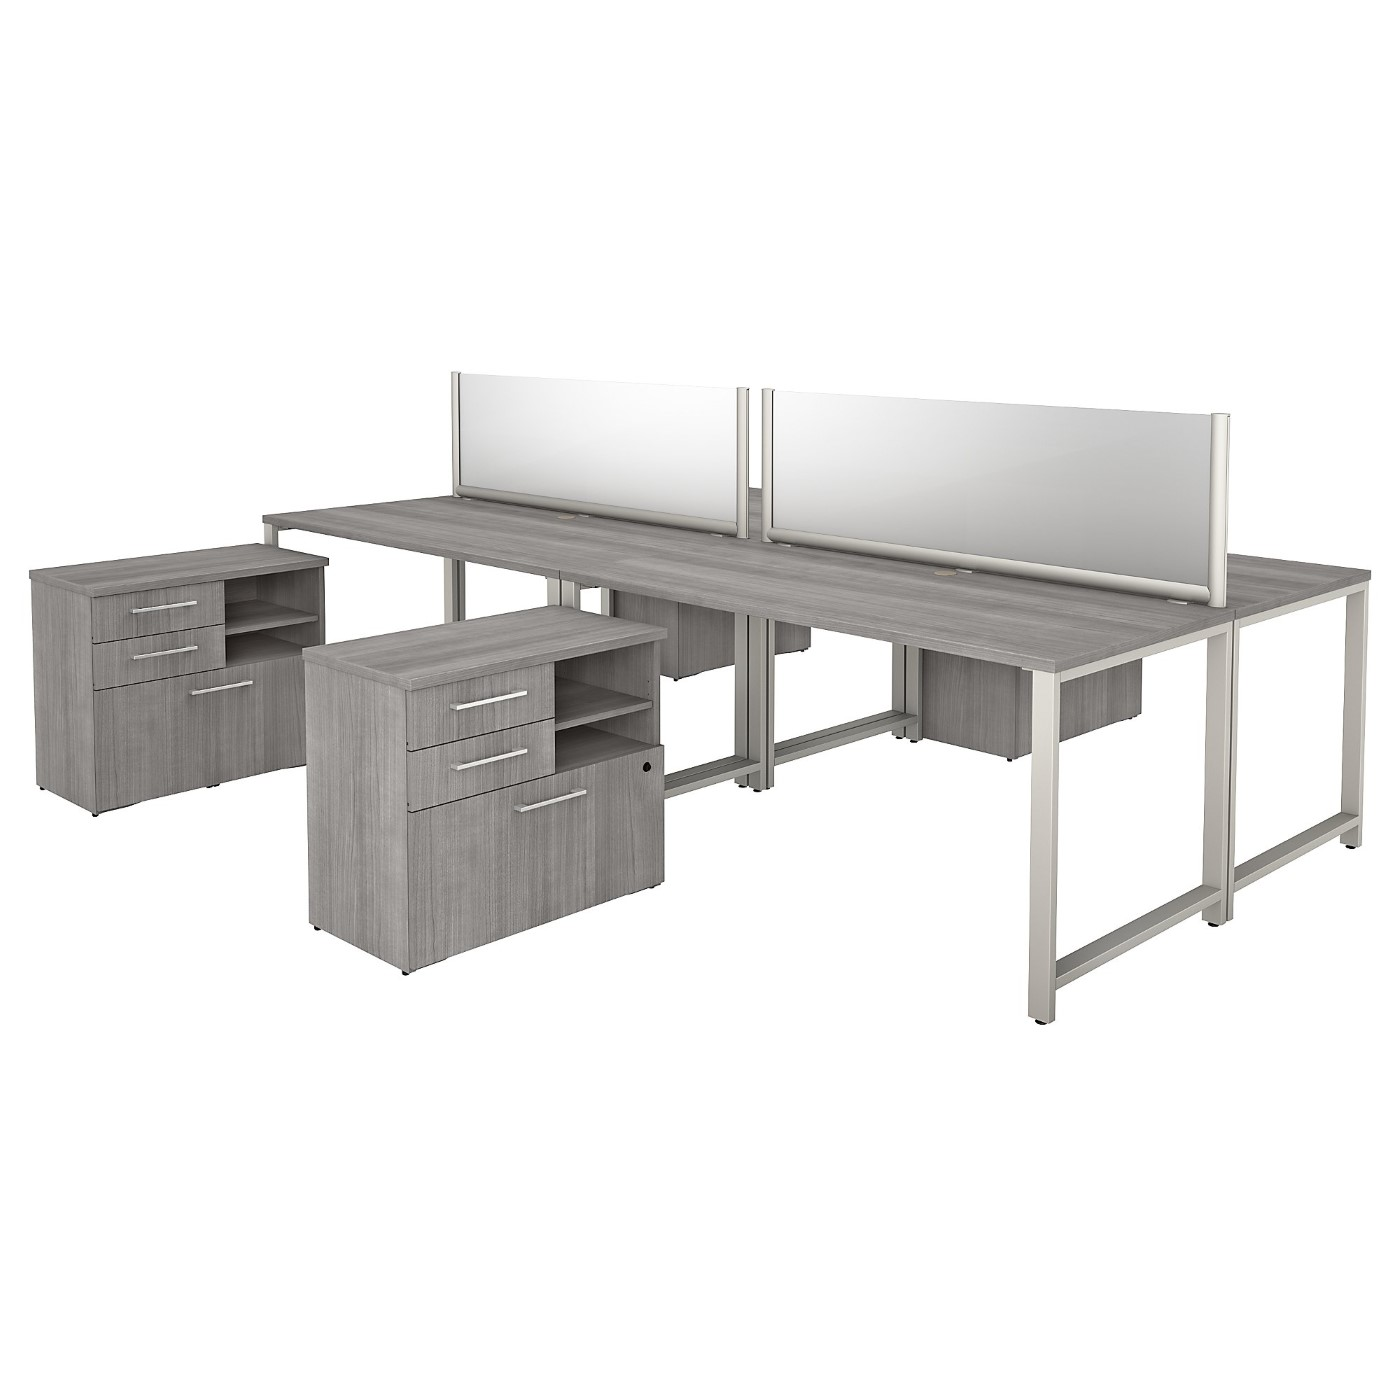 BUSH BUSINESS FURNITURE 400 SERIES 60W X 30D 4 PERSON WORKSTATION WITH TABLE DESKS AND STORAGE. FREE SHIPPING